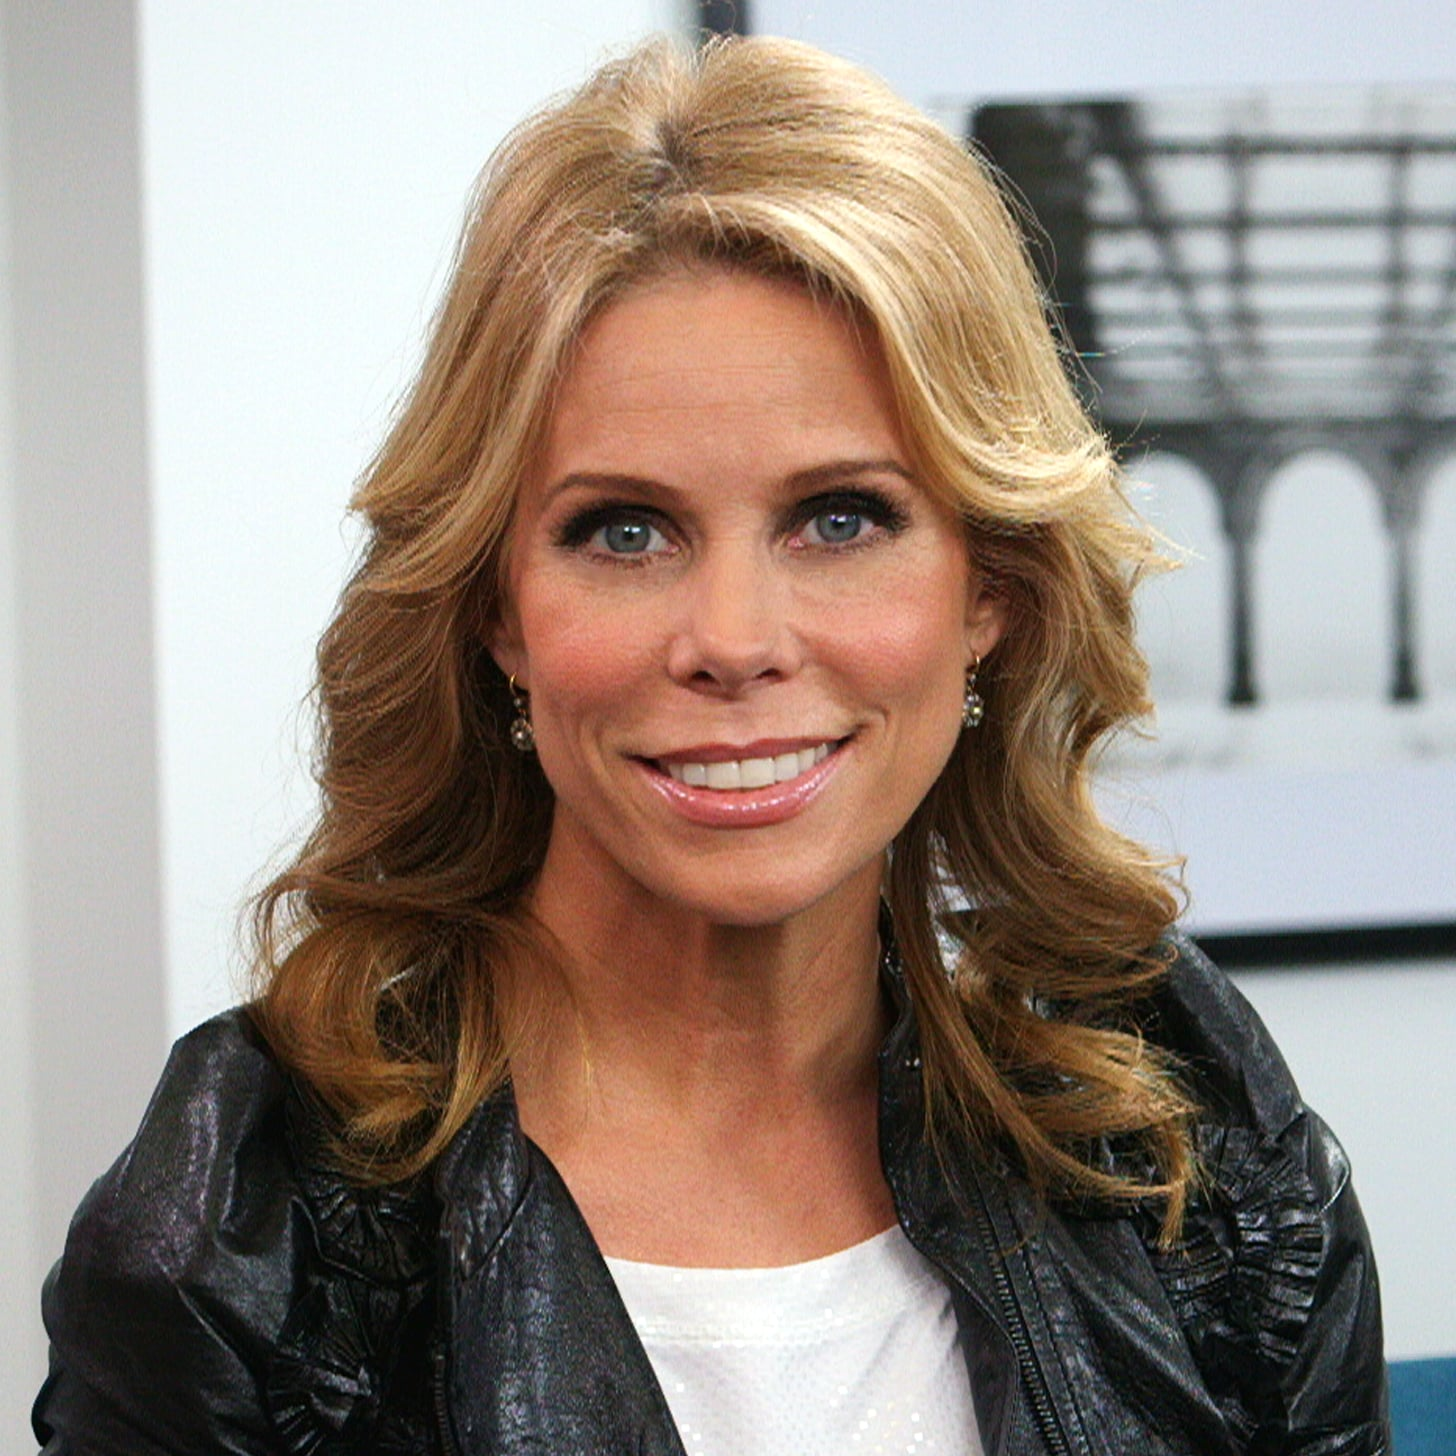 Forum on this topic: Finola Hughes (born 1959), cheryl-hines/